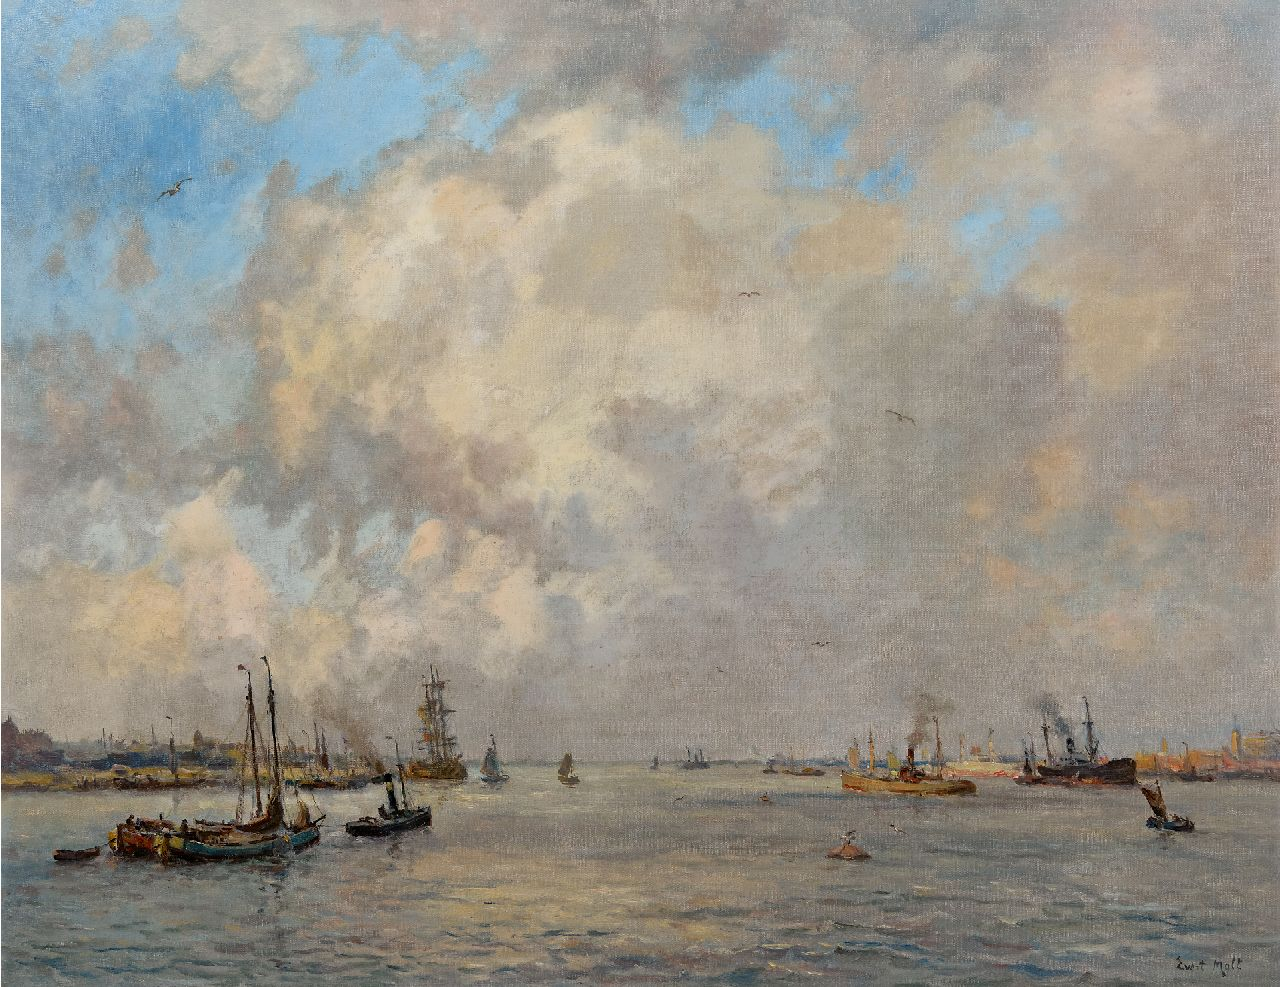 Moll E.  | Evert Moll | Paintings offered for sale | Navigation under a high cloudy sky, oil on canvas 72.2 x 92.7 cm, signed l.r.